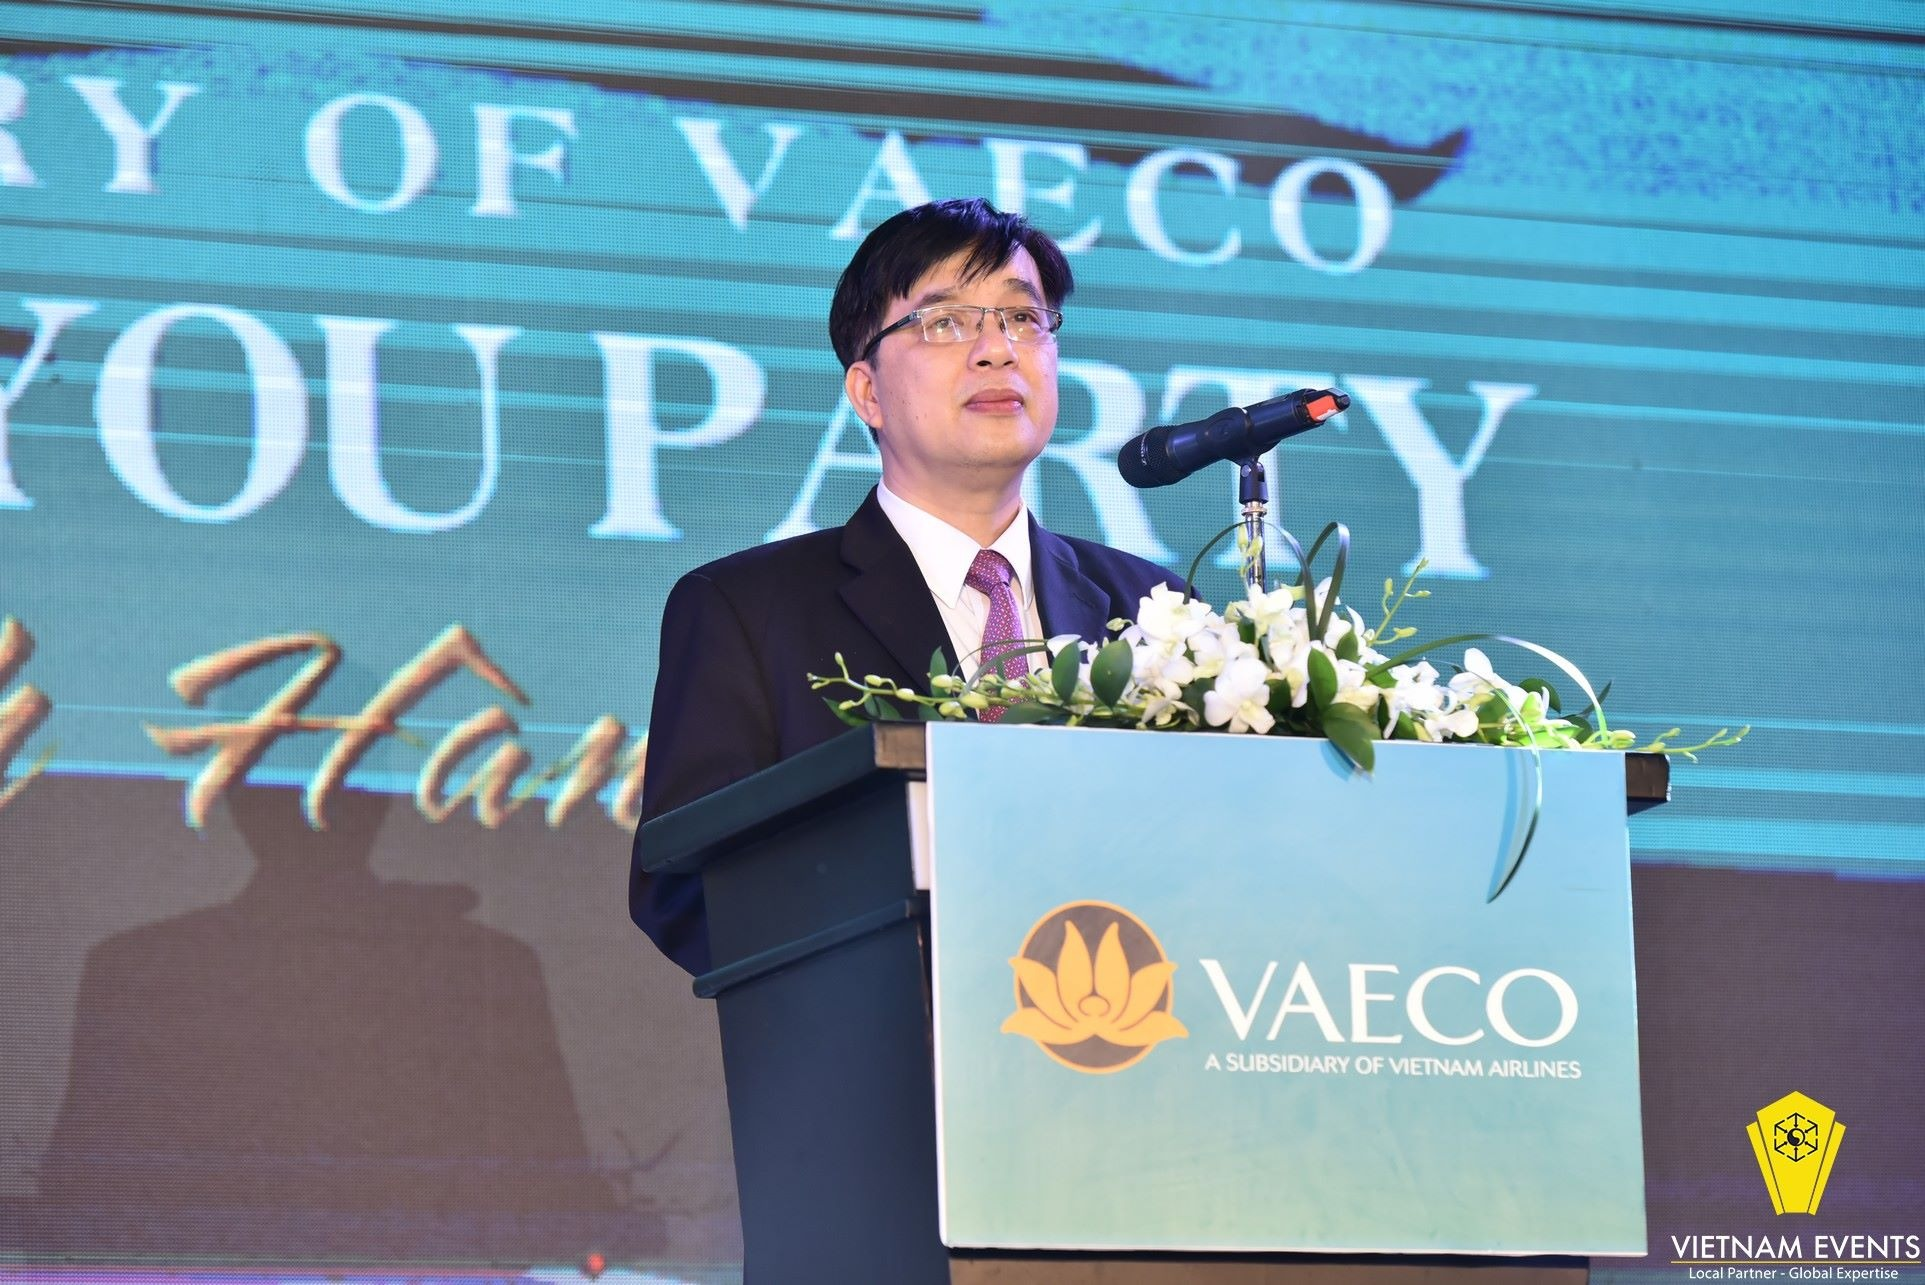 Vaeco's Customers thank you party- 10th year anniversary